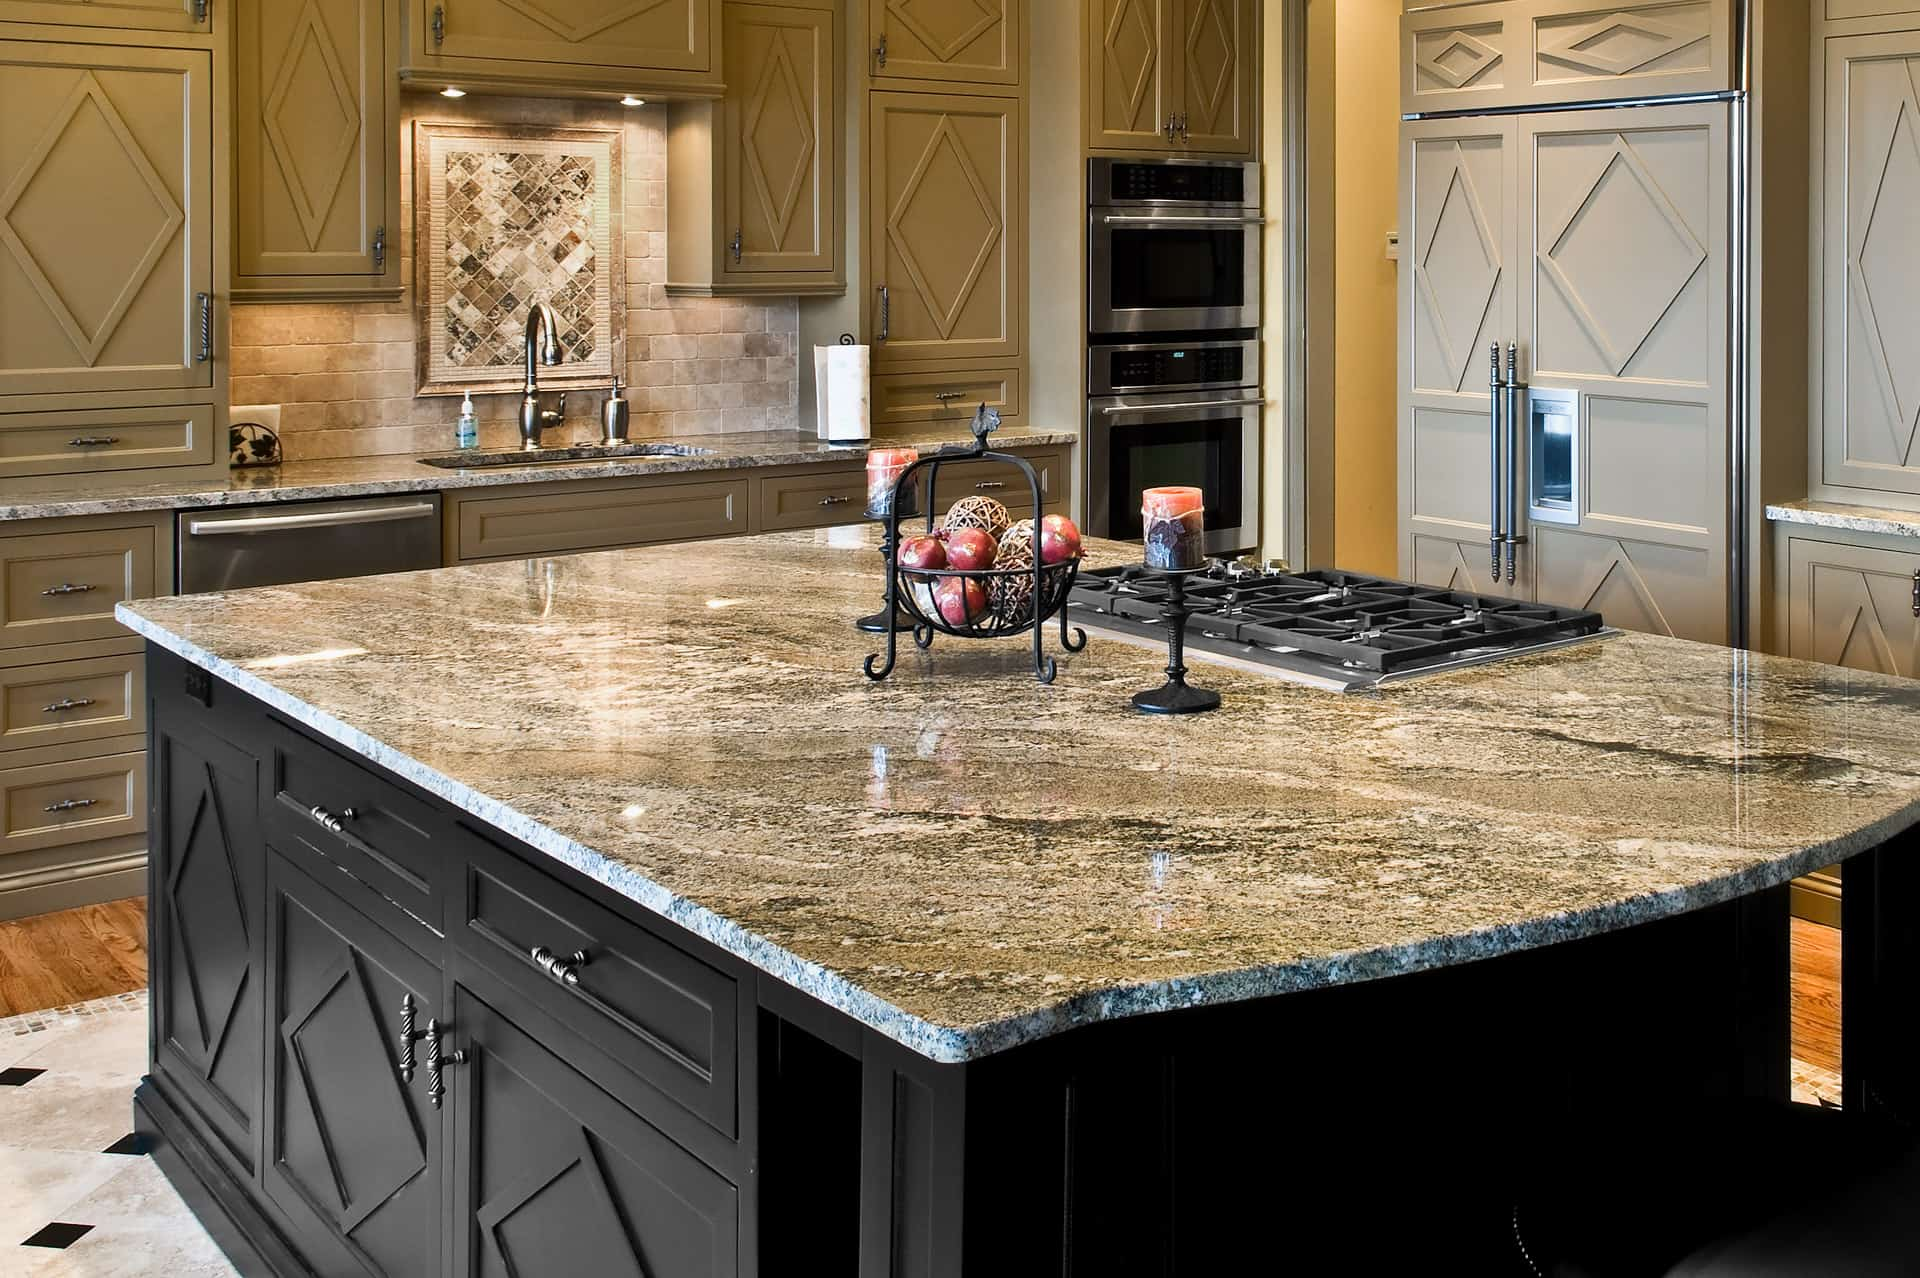 Https Www Countertopguides Com Guides The Benefits Of Engineered Stone Countertops Html